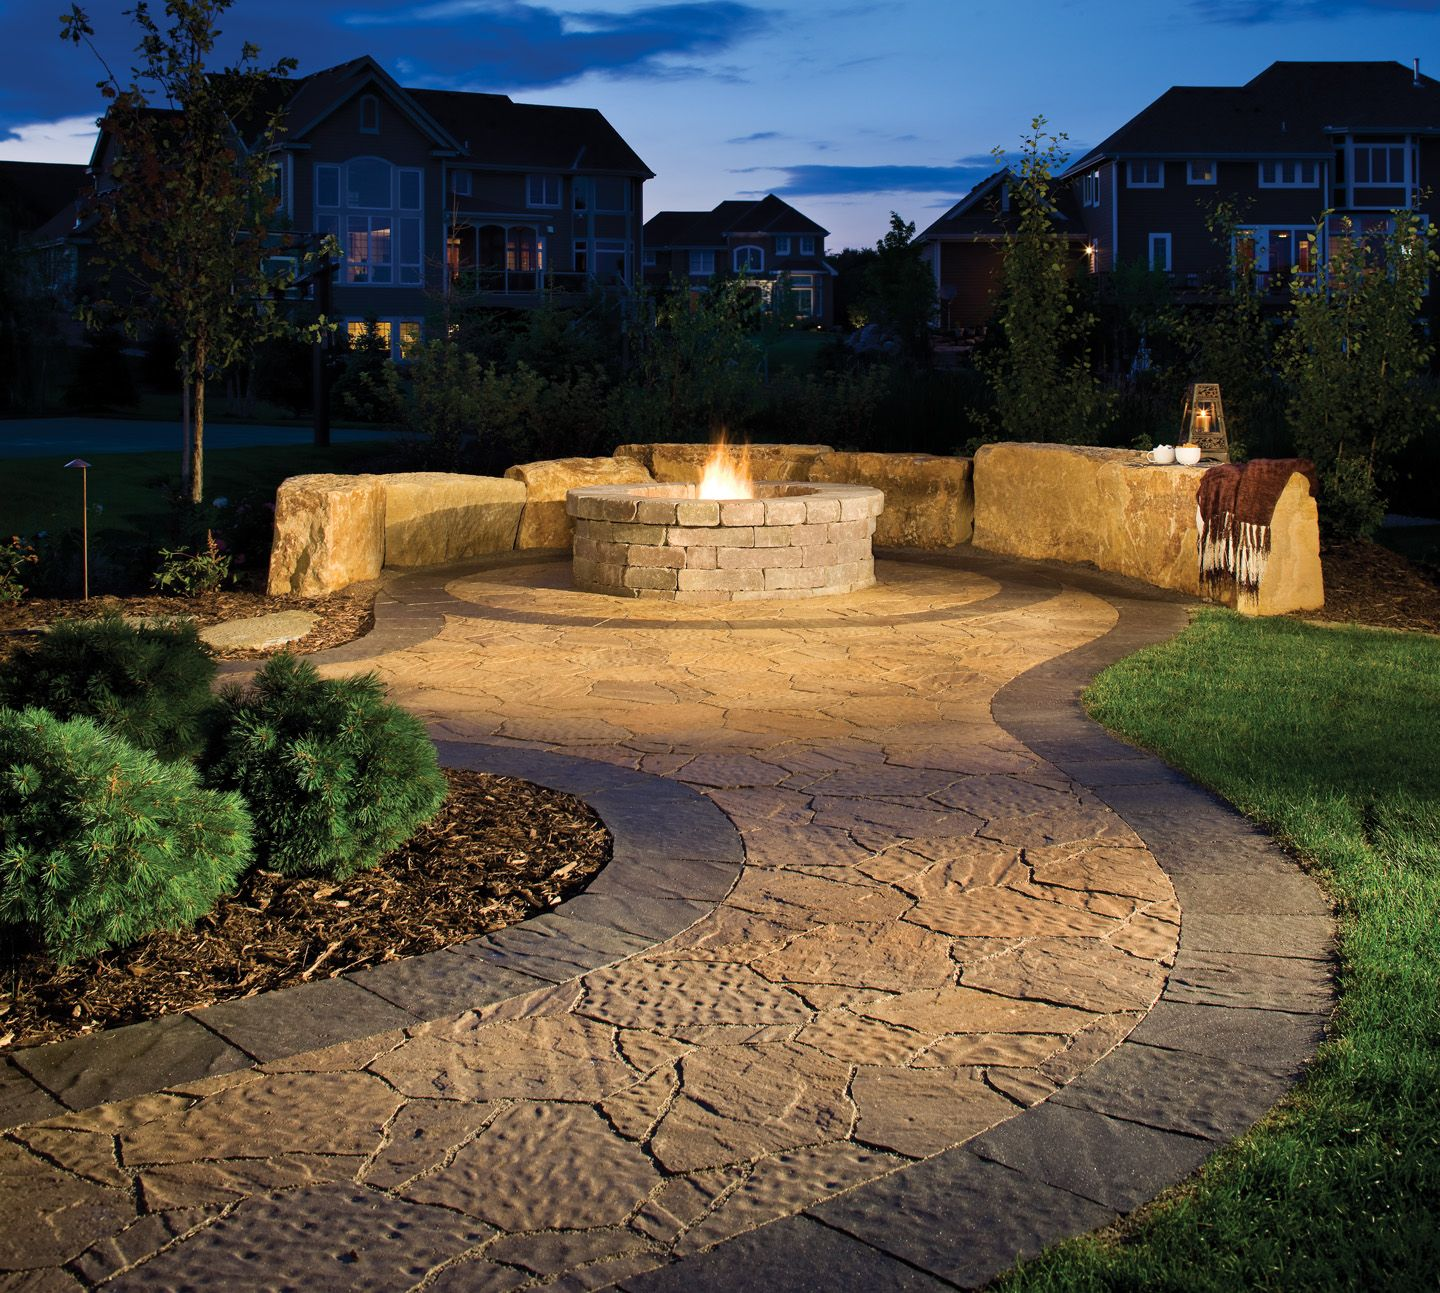 Stone fire pit designs patio traditional with artistic hardscape - Hardscape Idea Path To Fire Pit